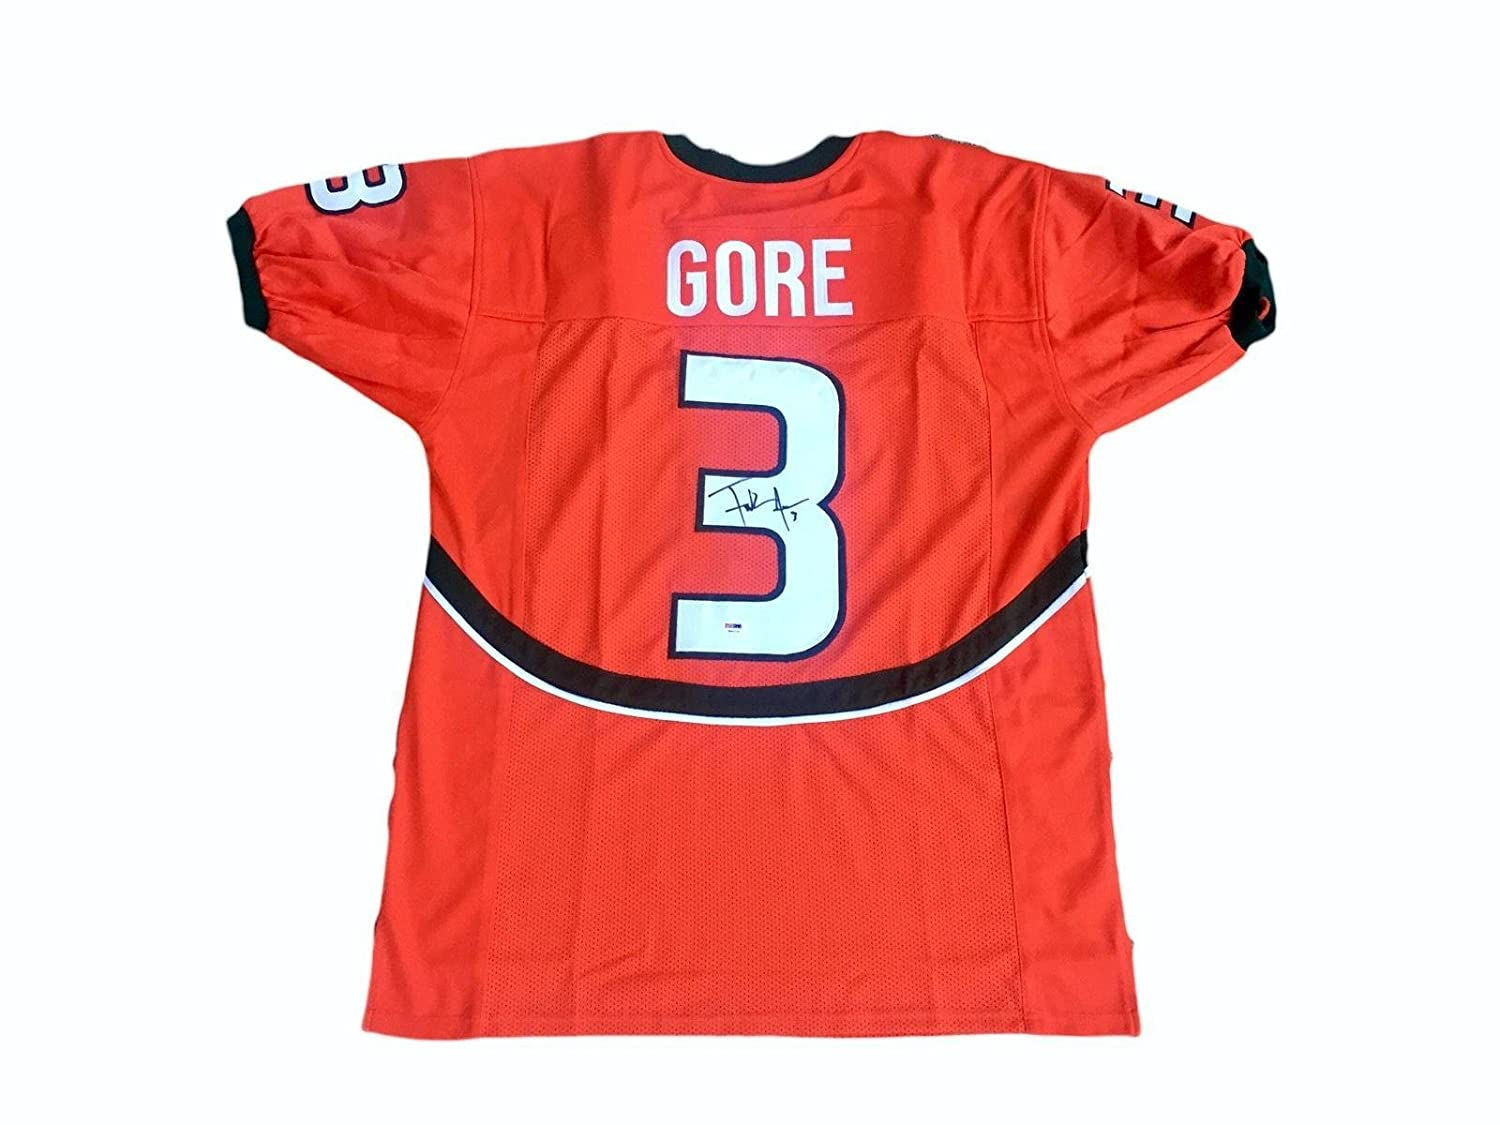 e306b2a57 Signed Frank Gore Jersey - PSA DNA Certified - Autographed College Jerseys  at Amazon s Sports Collectibles Store